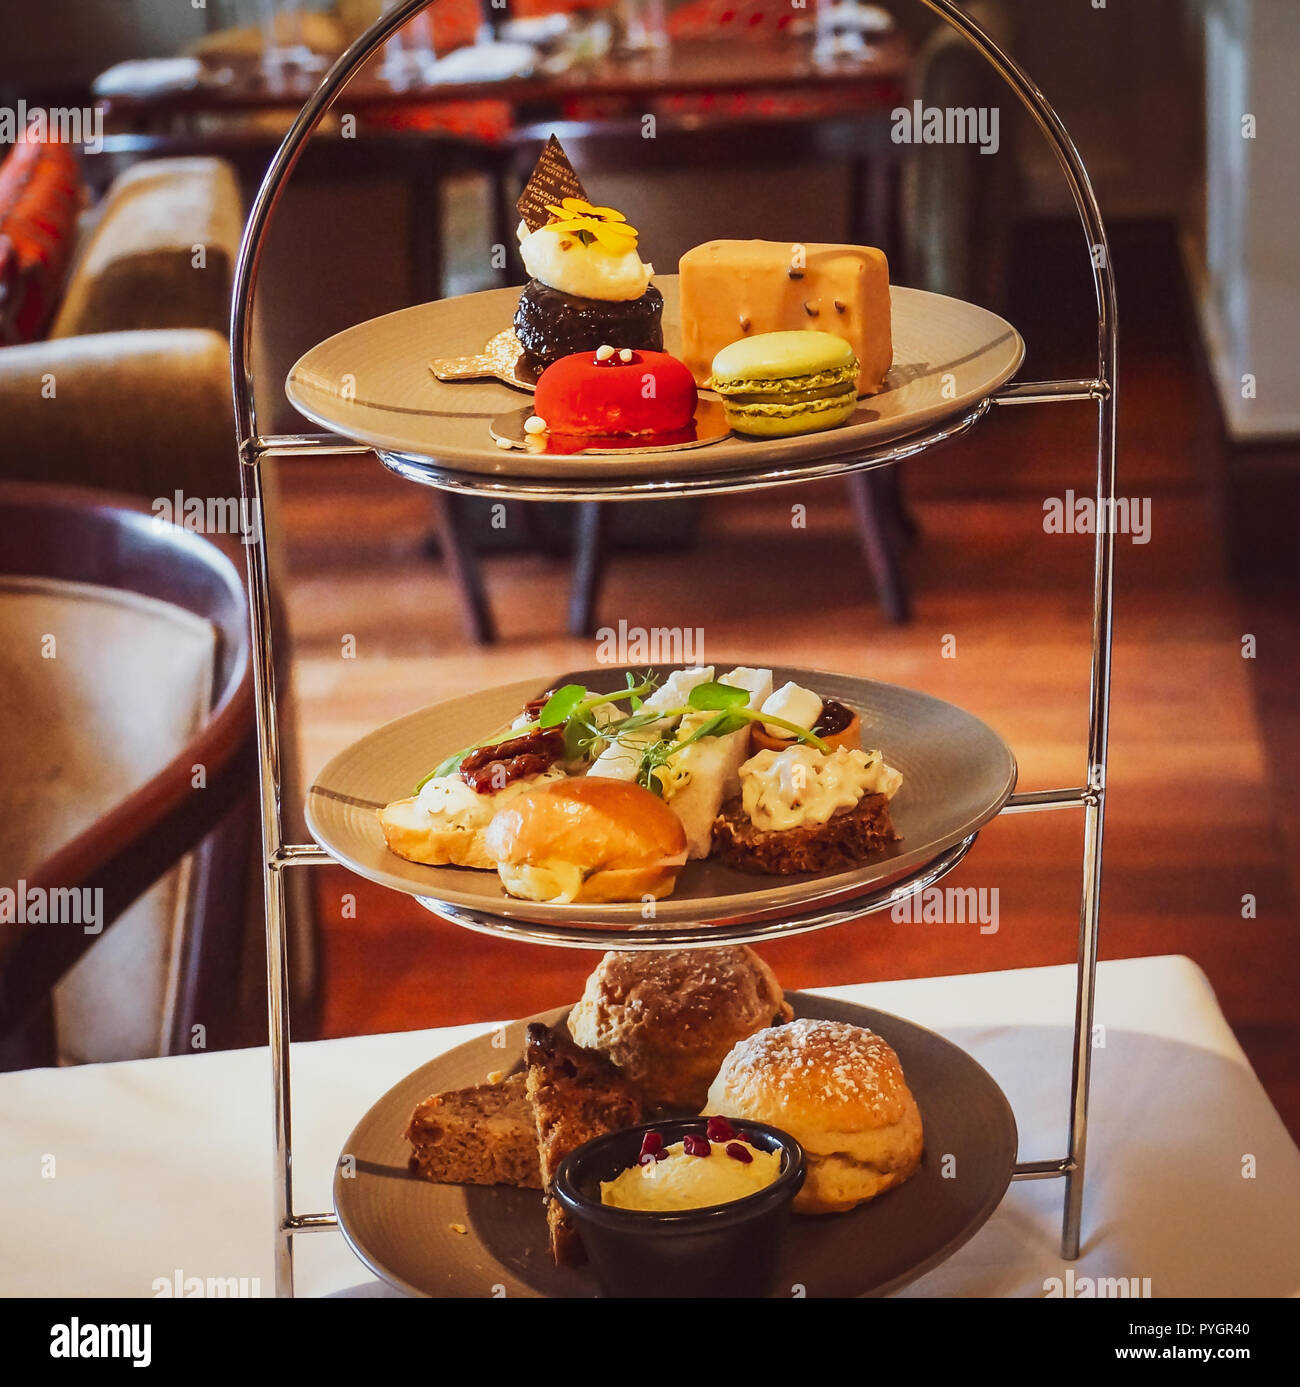 a tiered rack with a complete English afternoon tea  with sweets, savory sandwiches, scones, clotted cream, served - Stock Image